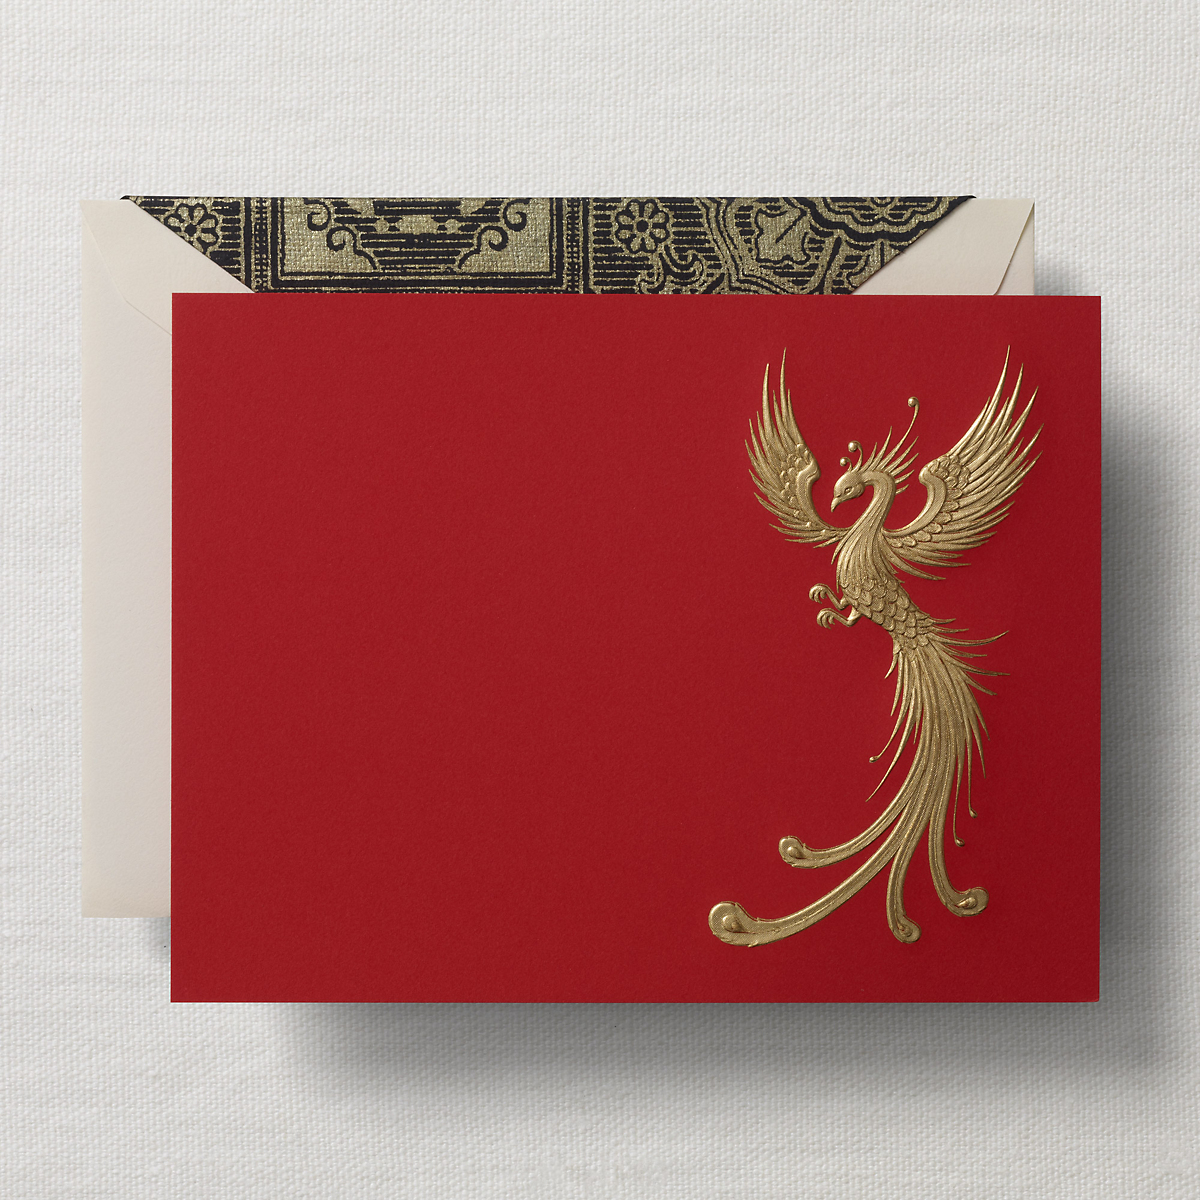 Crane & Co. Signature Phoenix Cards, Set of 8